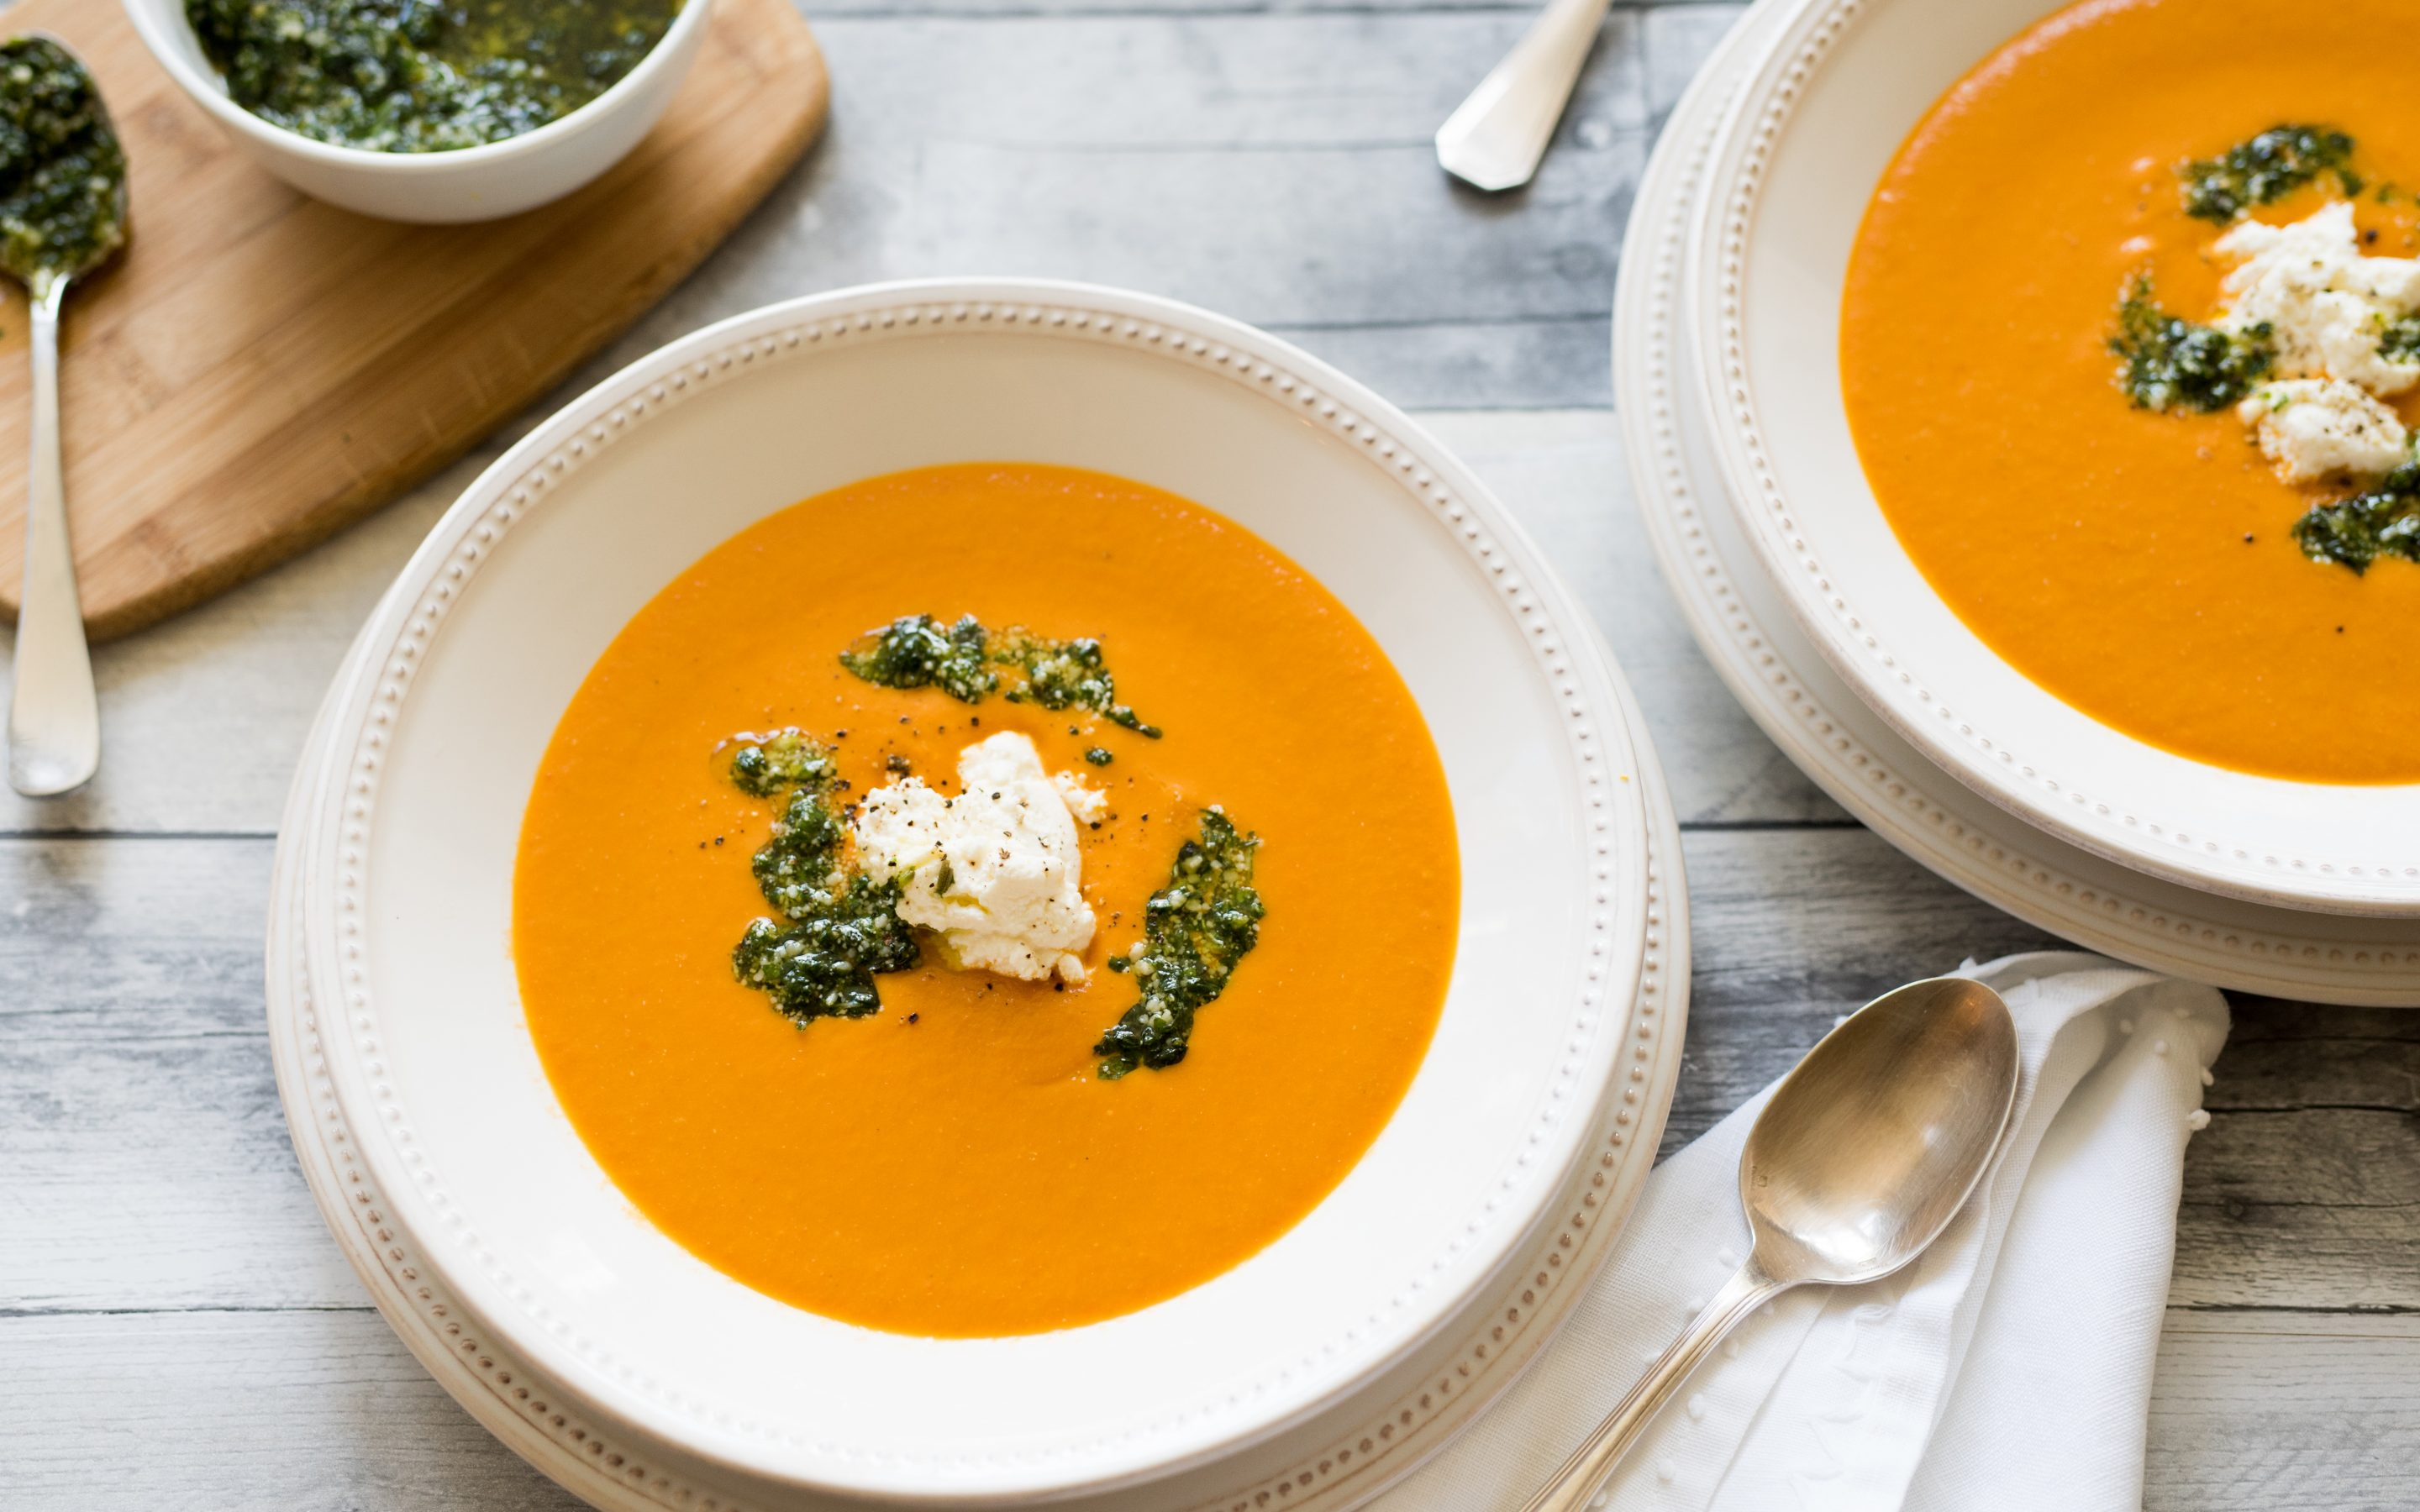 CREAM OF TOMATO SOUP WITH HOMEMADE RICOTTA CHEESE & ARUGULA PESTO